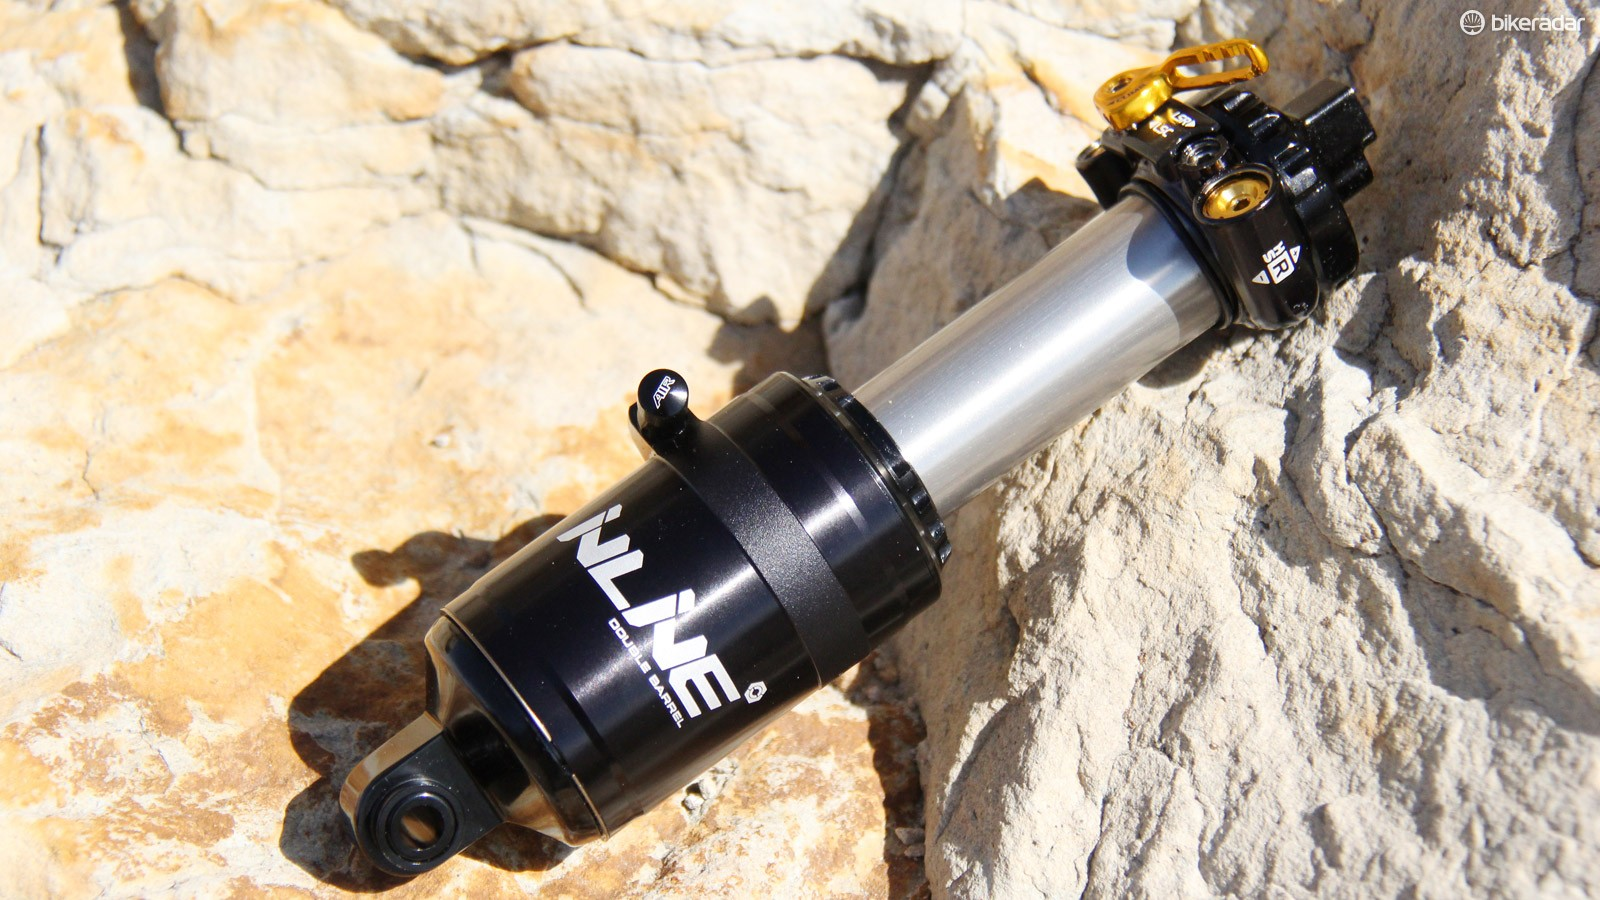 We're looking forward to putting Cane Creek's new DB Inline shock though the paces